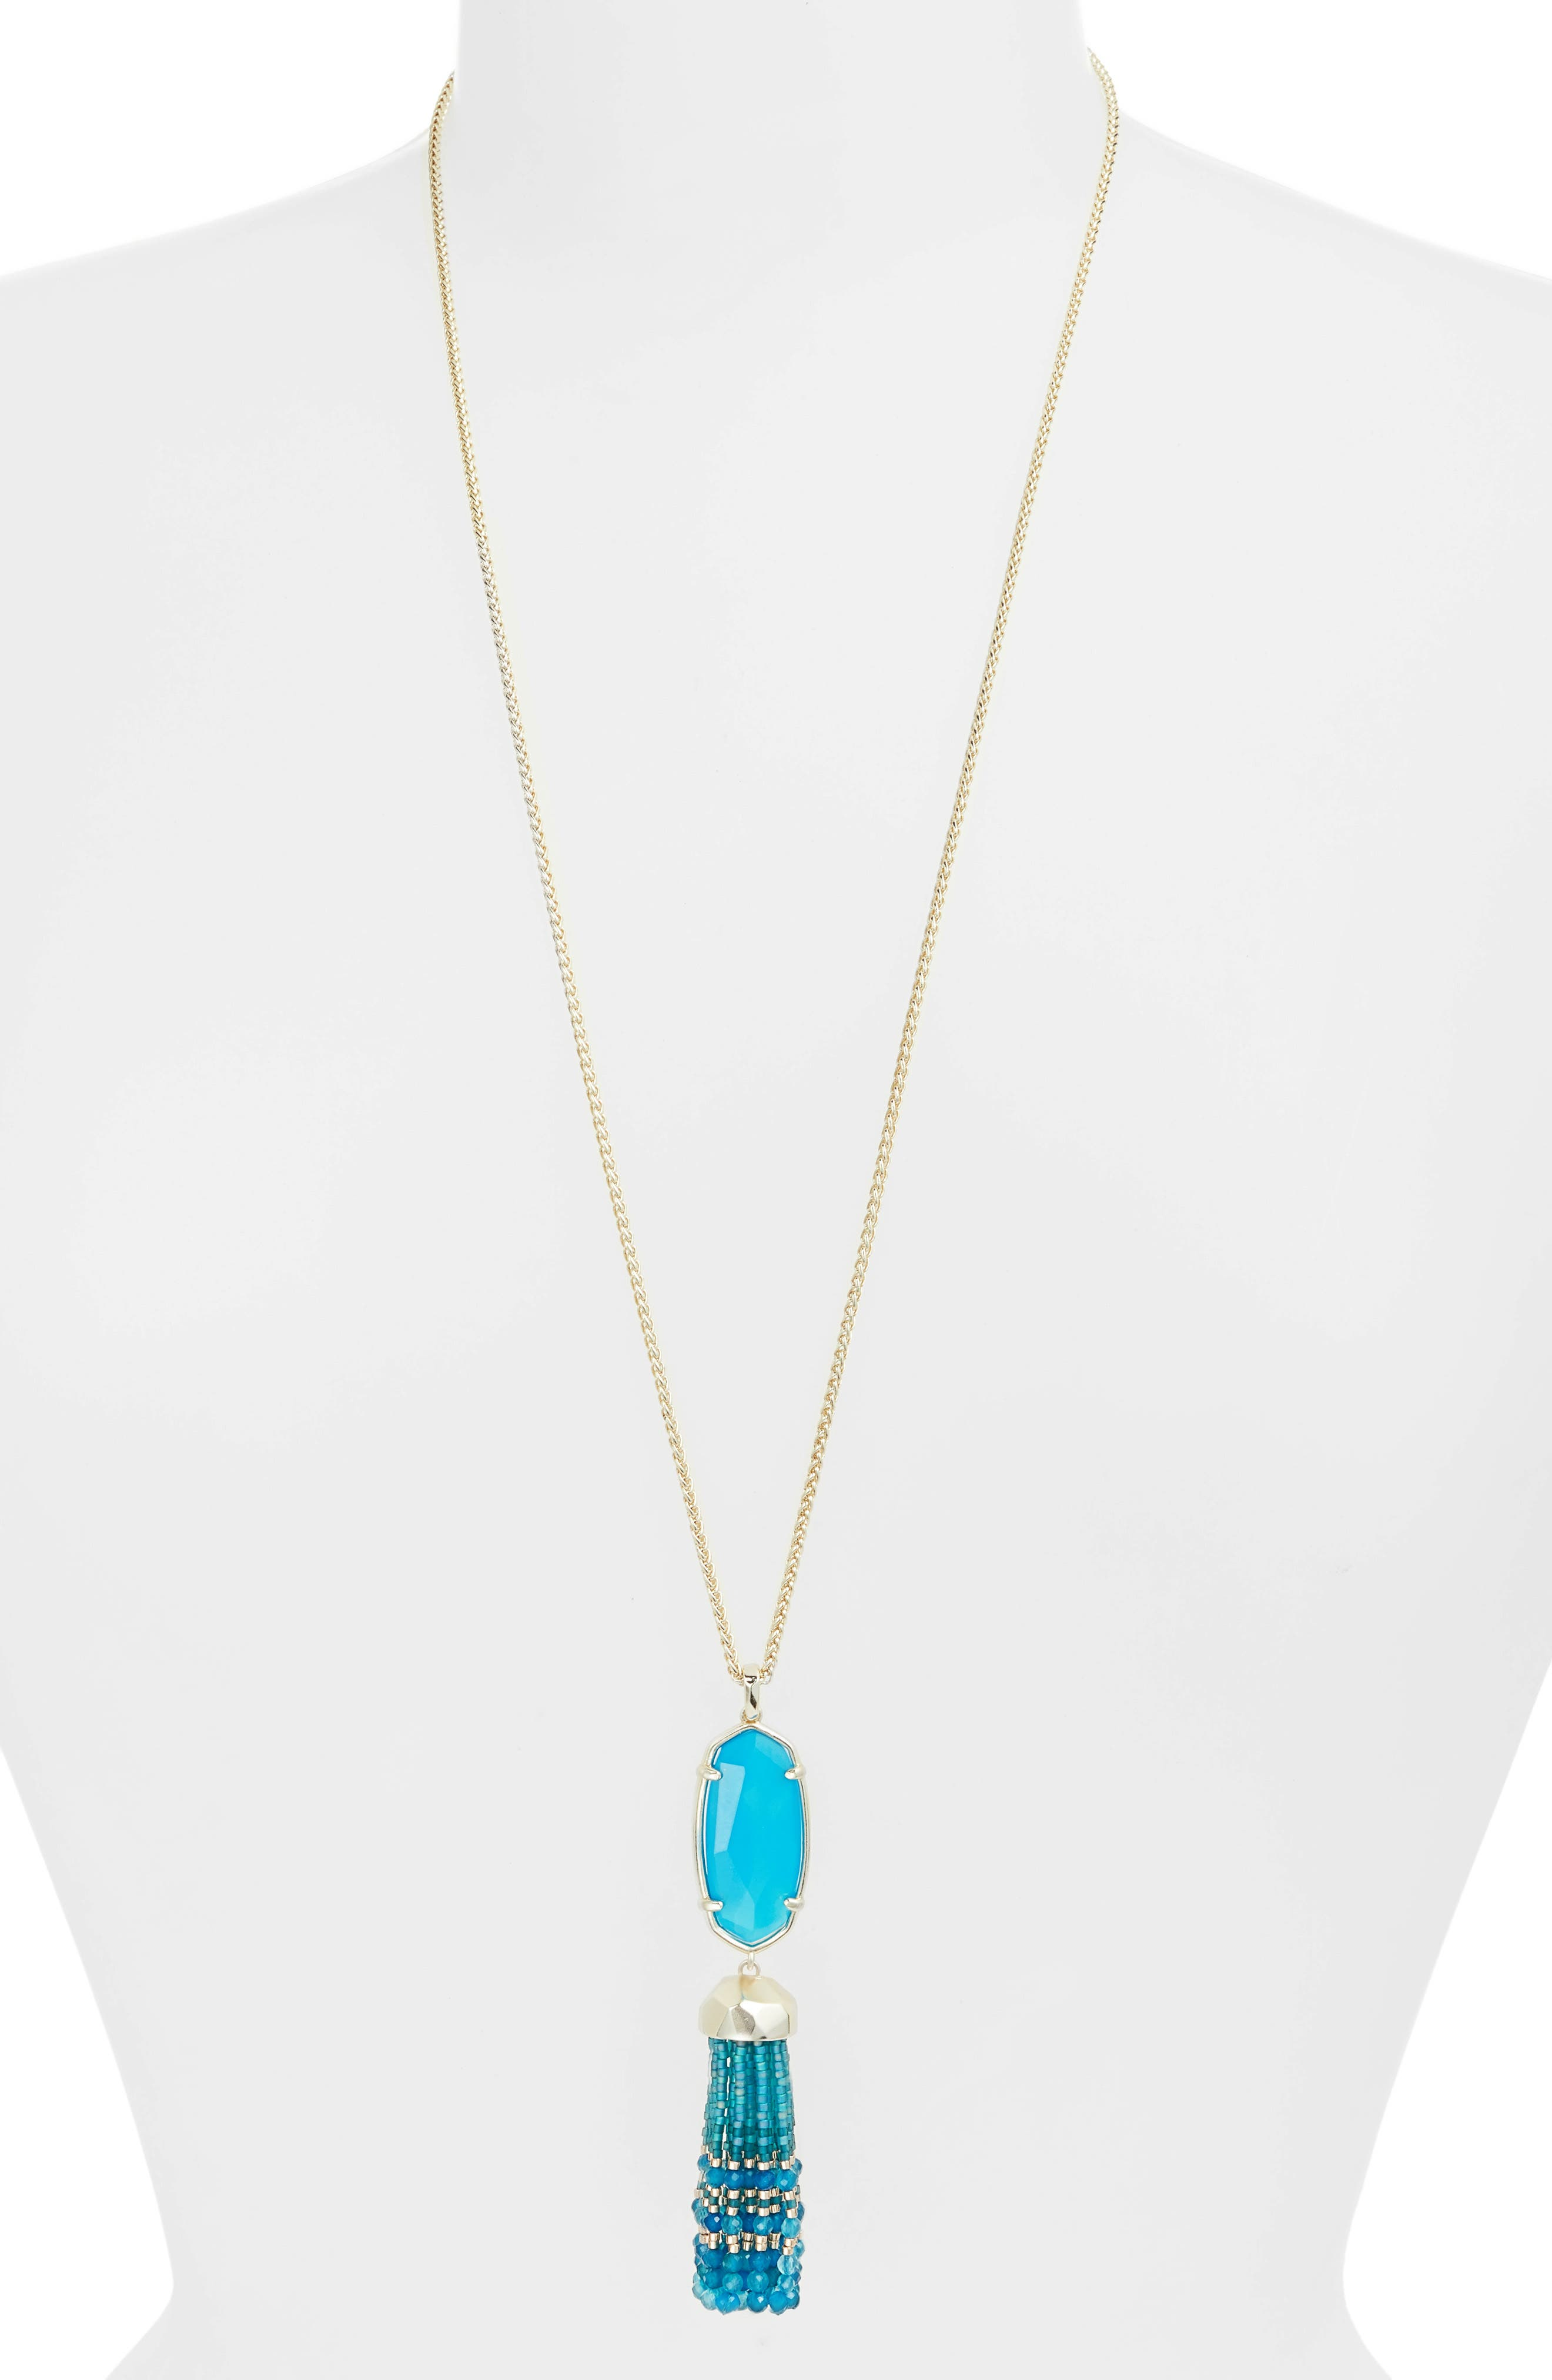 Eva Tassel Pendant Necklace,                         Main,                         color, TEAL UNBANDED AGATE/ GOLD